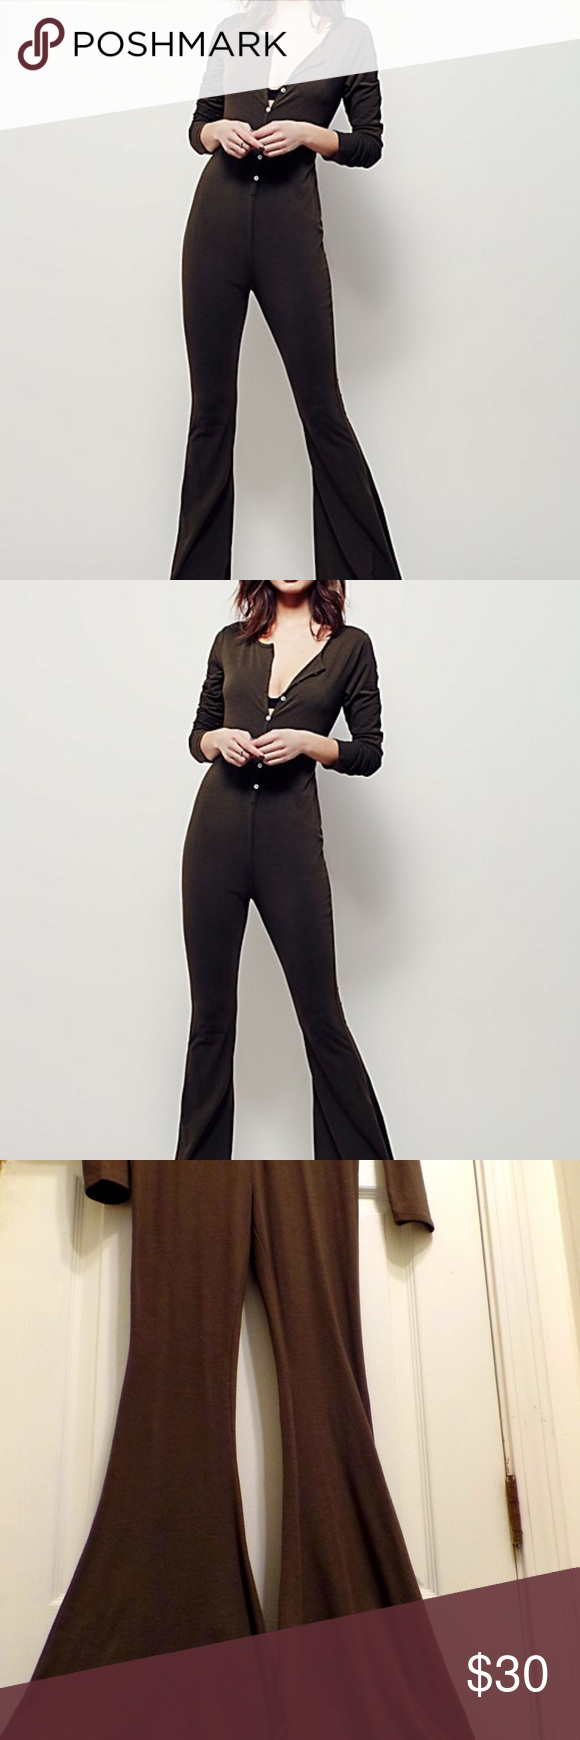 Free People jumpsuit XS This Free People jumpsuit is super comfy and perfect for lounging in style. Details include buttons up the front, elephant flares, and forest green in color. The size is XS but like many Free People items, it would fit anywhere from an XS to a small medium. Cotton, stretches. Free People Other